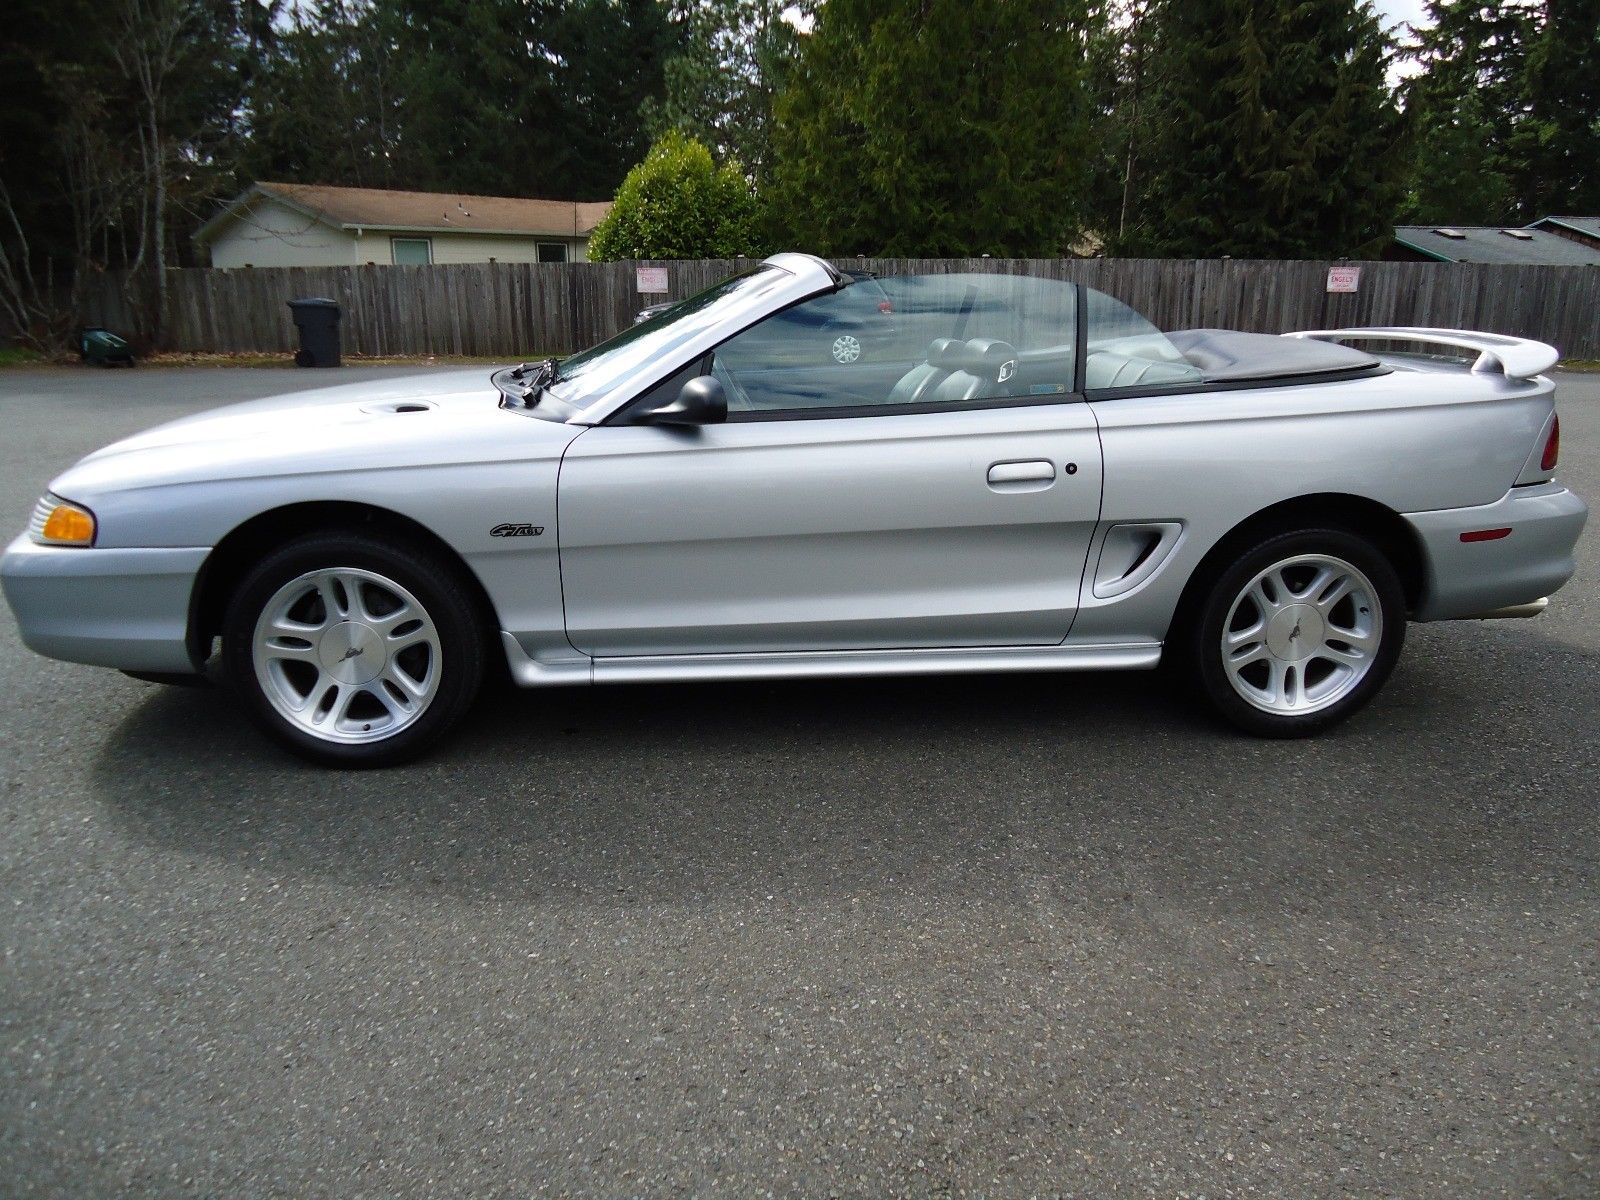 Amazing 1998 Ford Mustang Gt 18k Original 4 6 Silver Convertible 5 0 Rag Top Pony 2 Door 2018 2019